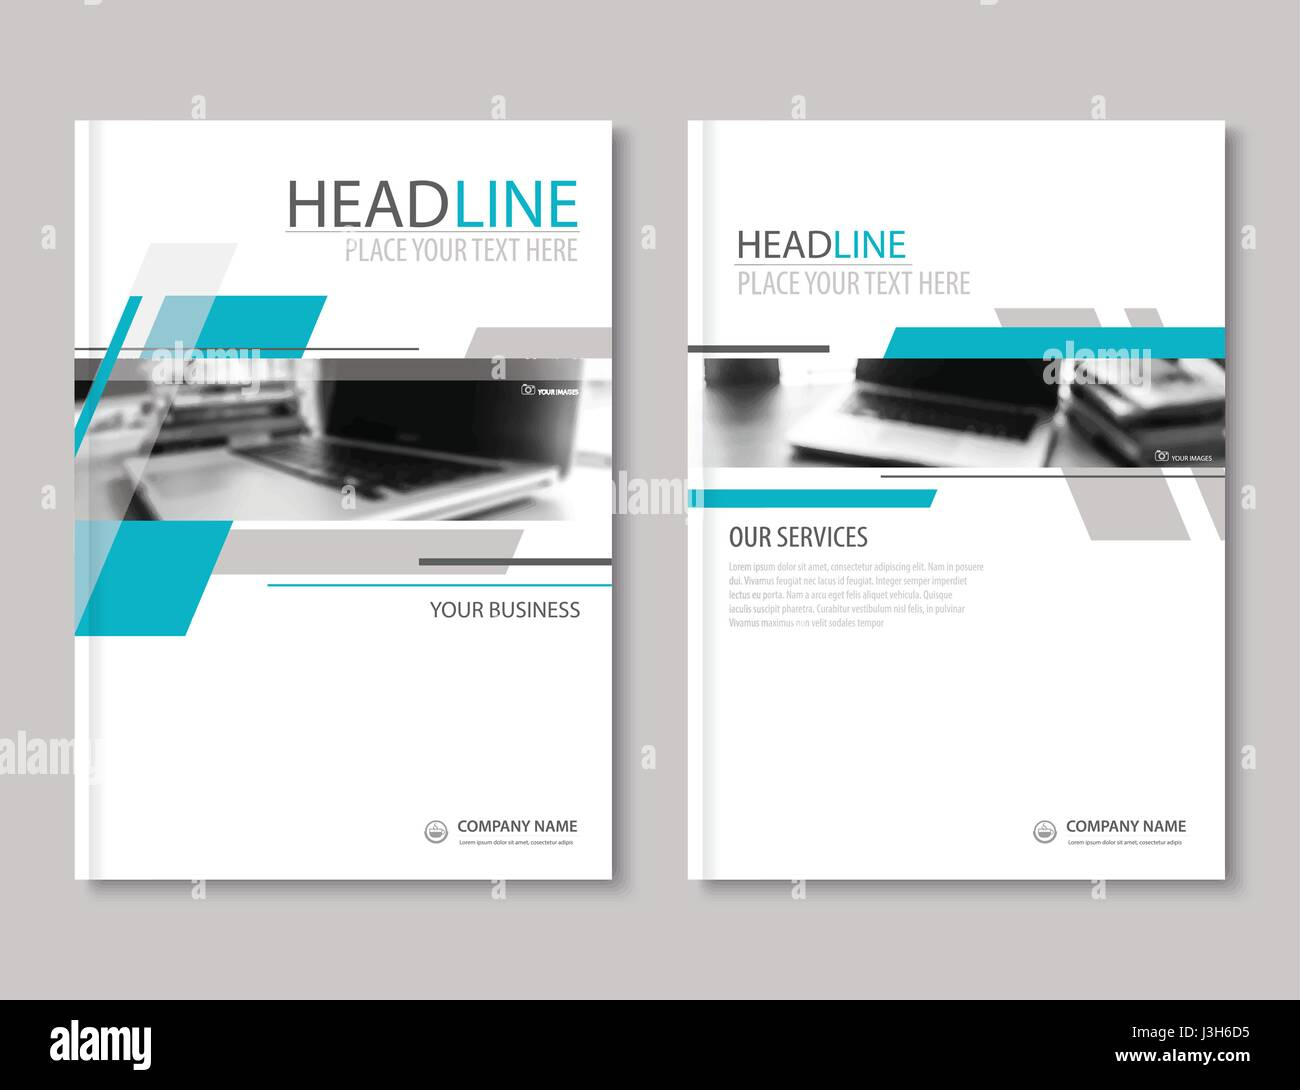 Annual report brochure flyer design template company profile stock annual report brochure flyer design template company profile business headlineleaflet cover presentation flat background friedricerecipe Images